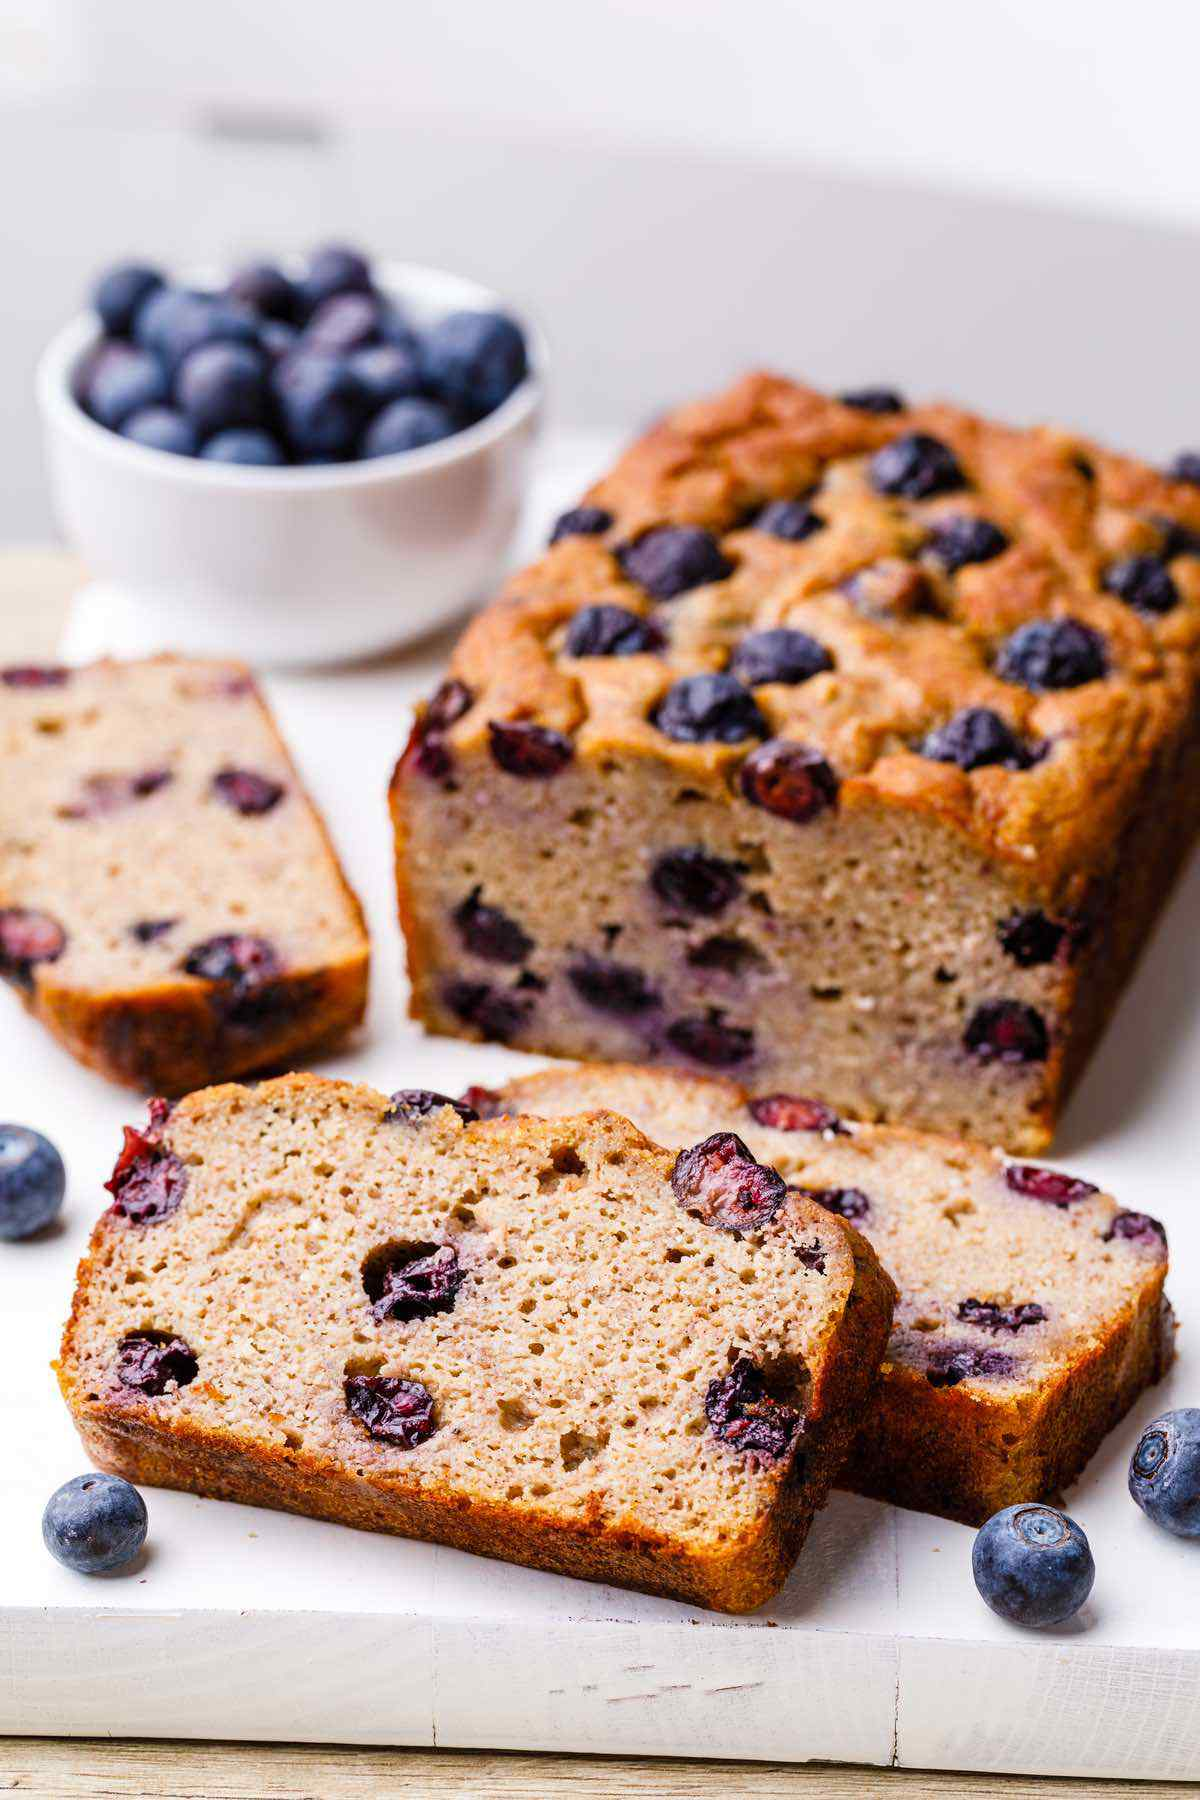 Paleo Blueberry Banana Bread